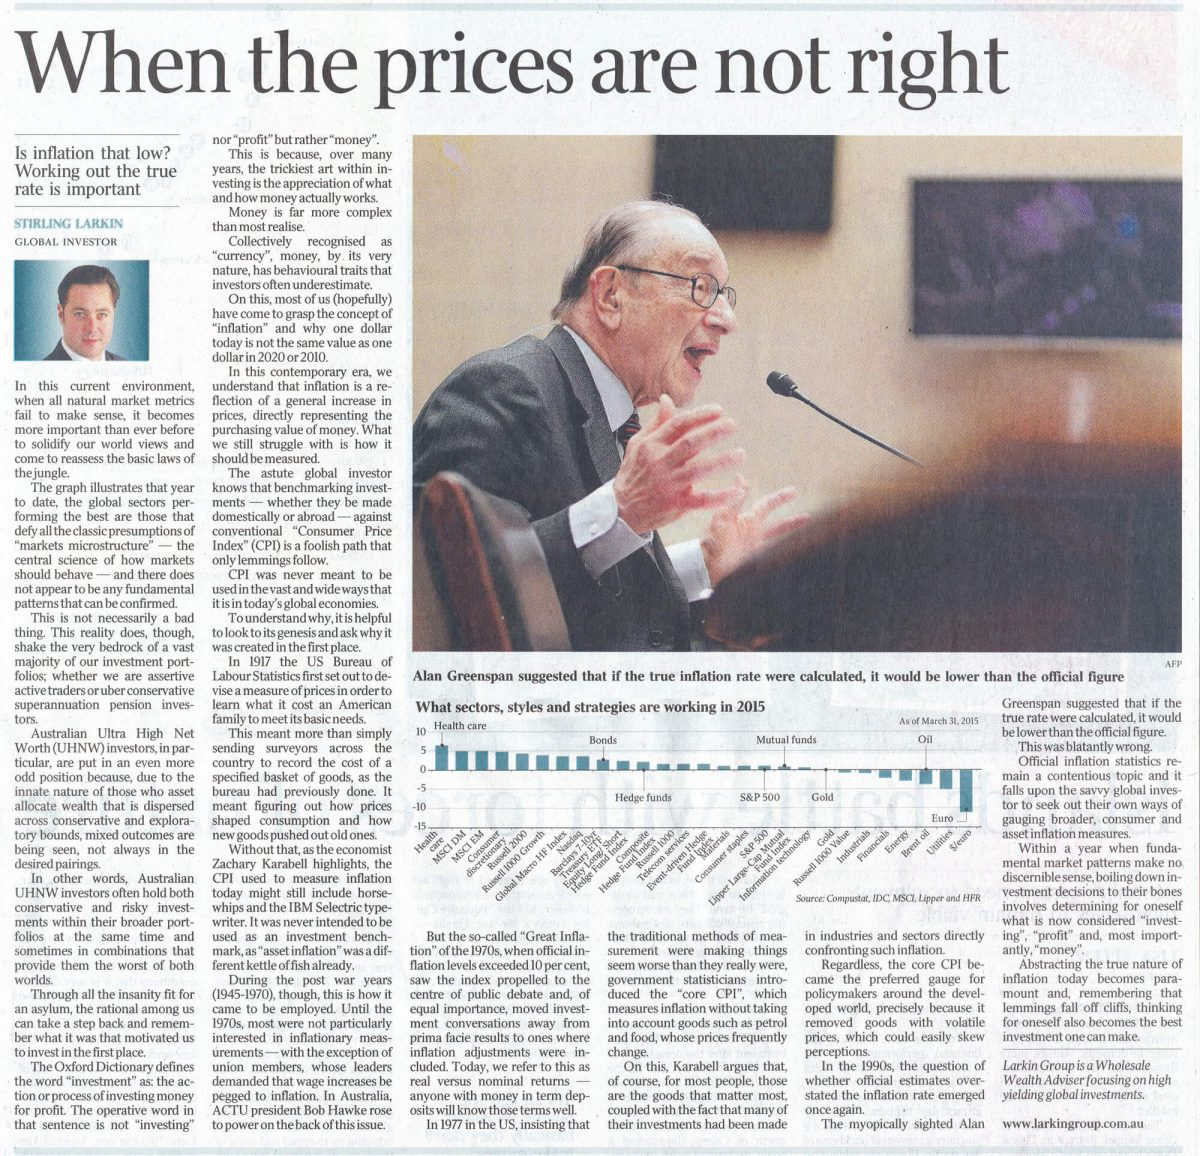 australian standfirst discusses inflation in 2015 in the australian newspaper